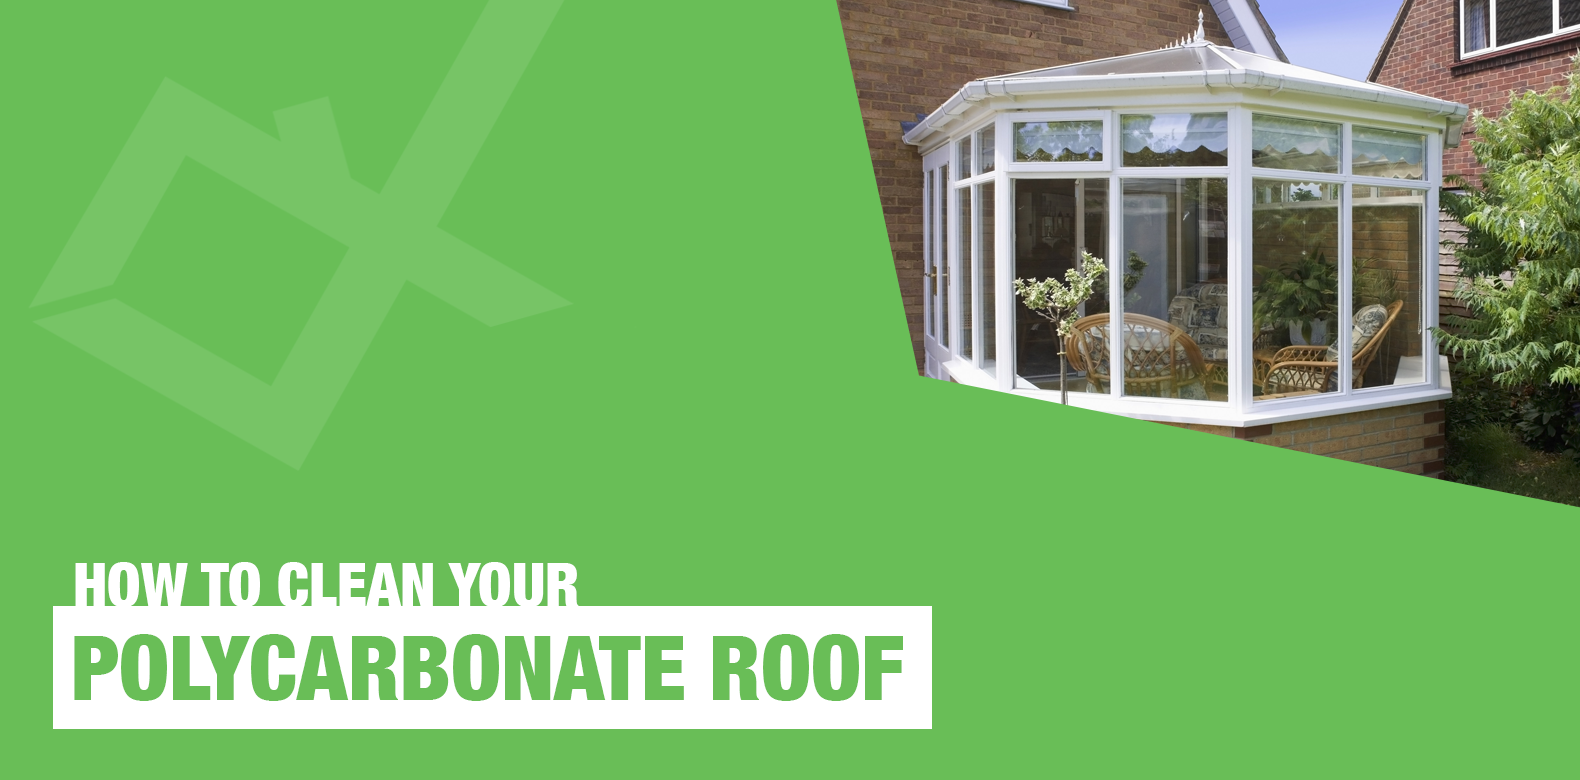 How to Clean Your Polycarbonate Roof